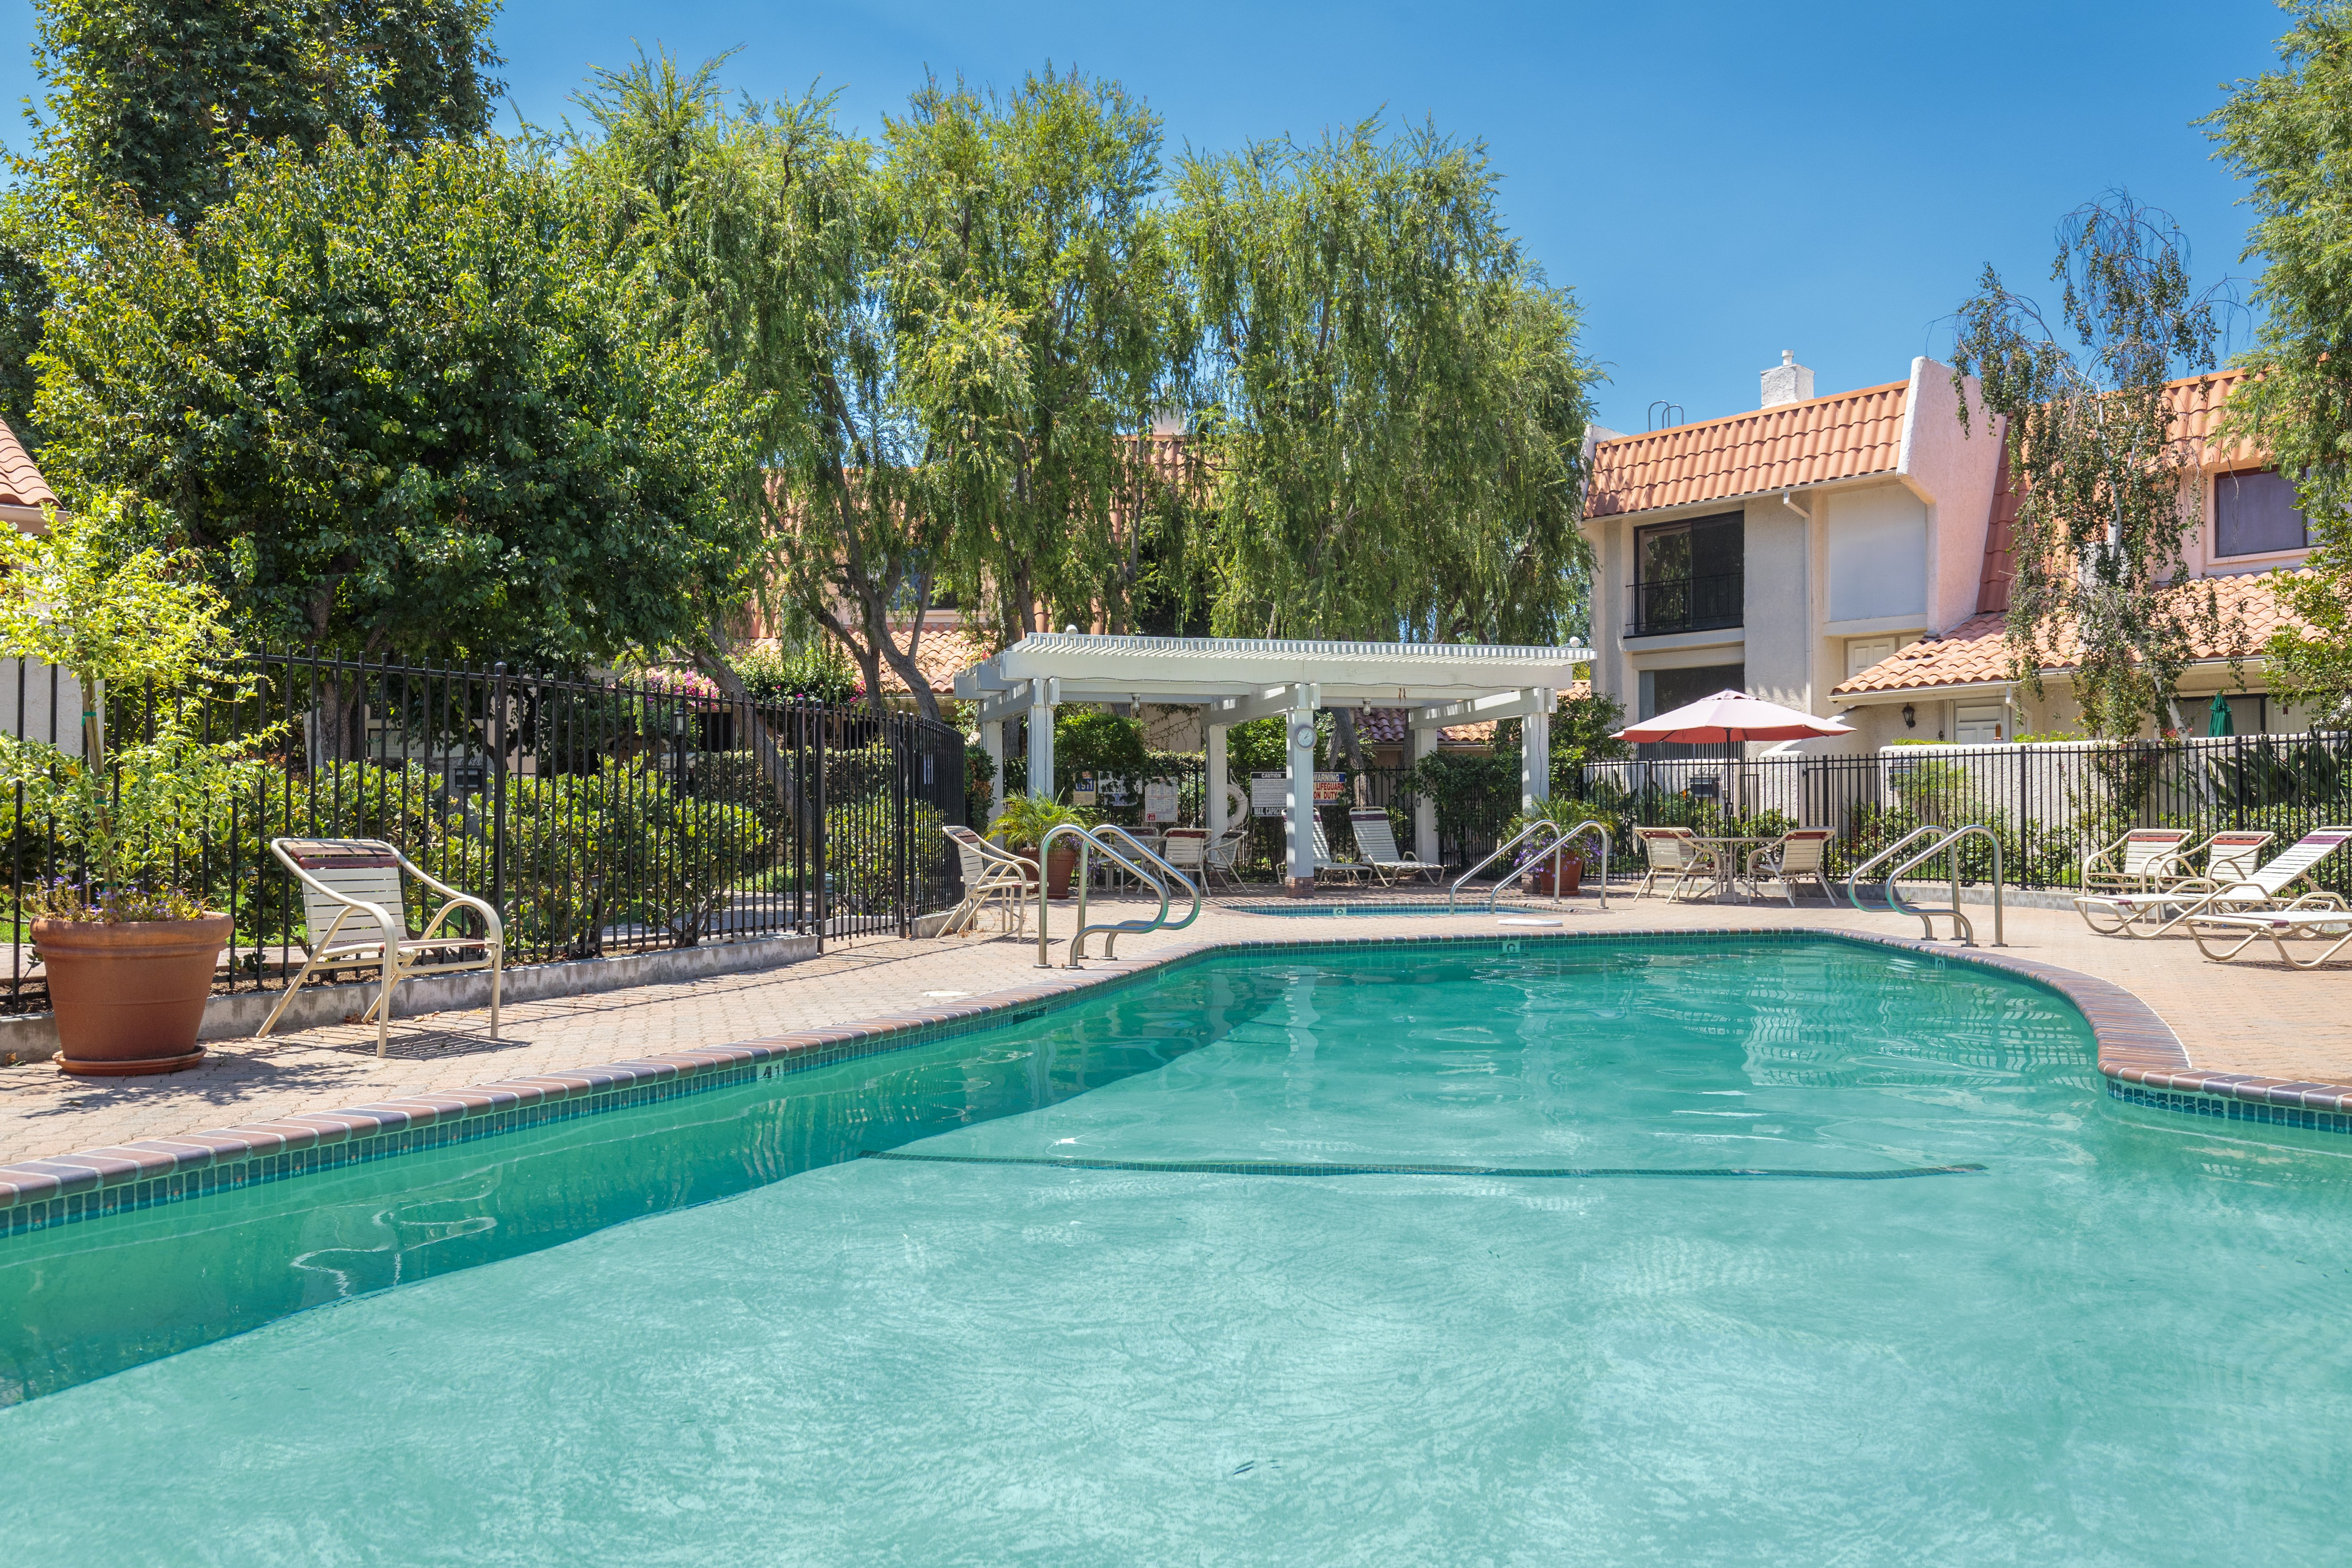 6256 shoup ave woodland hills ca 91367 for Glassell park recreation center swimming pool